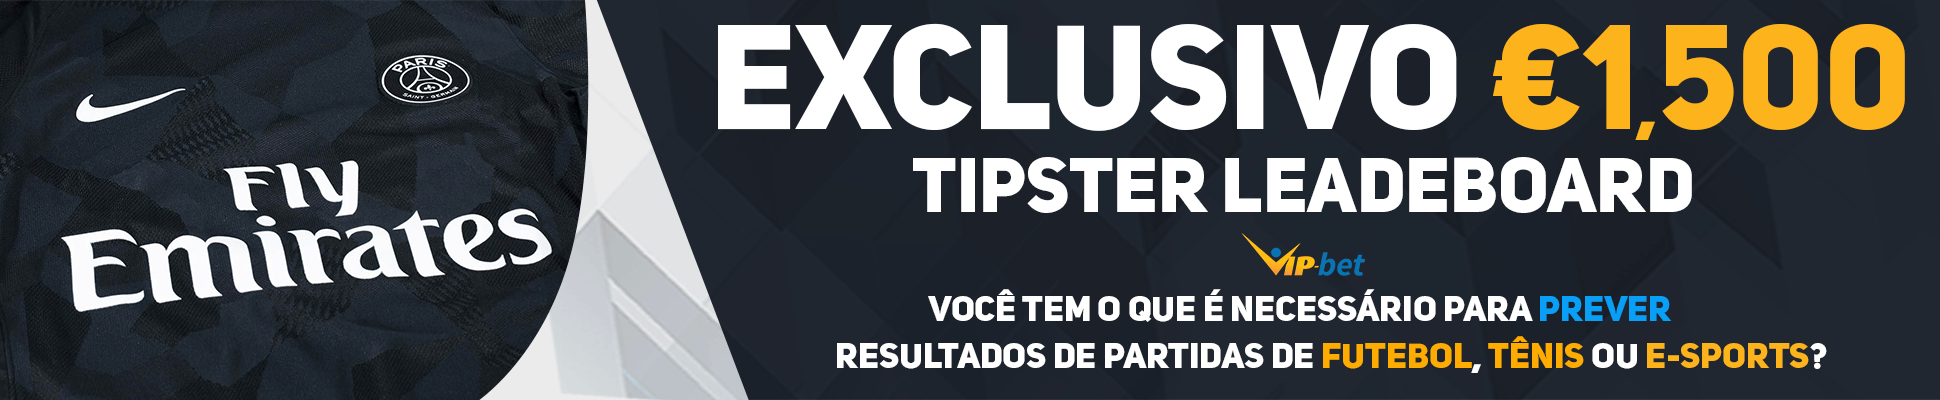 tipster-1940x400-Br-2